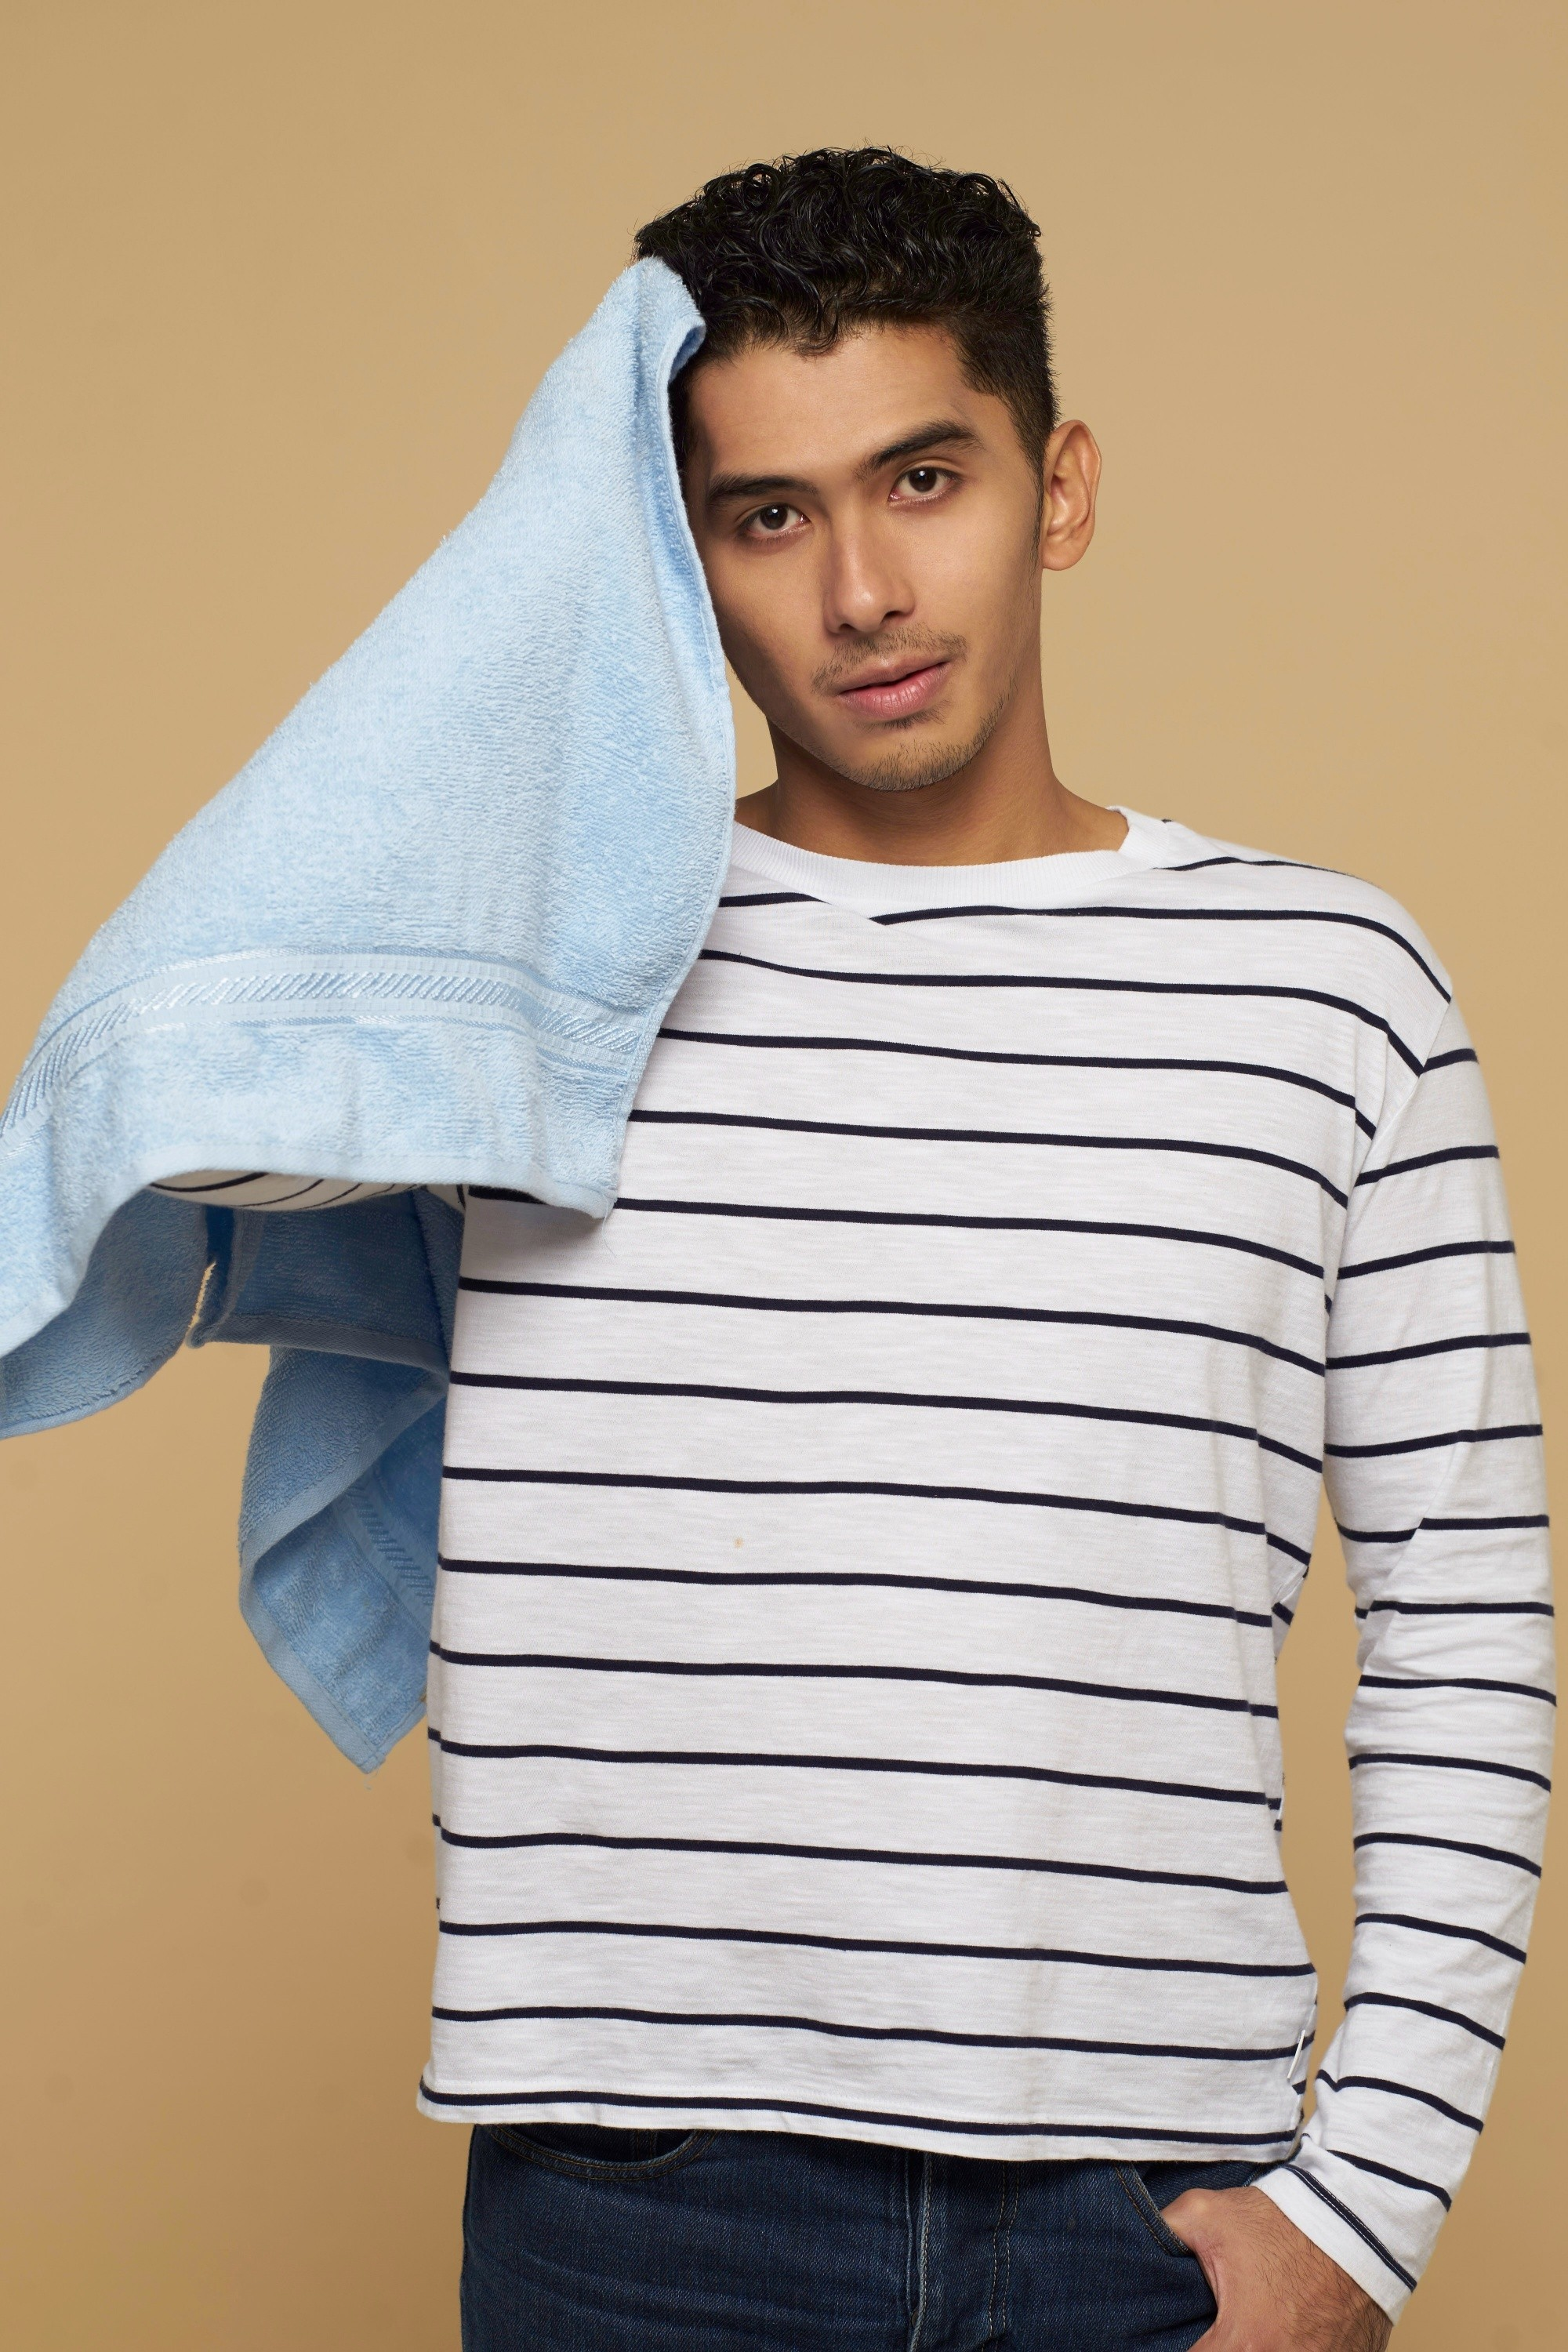 Men's grooming: Asian man holding a blue towel and patting his short black hair dry